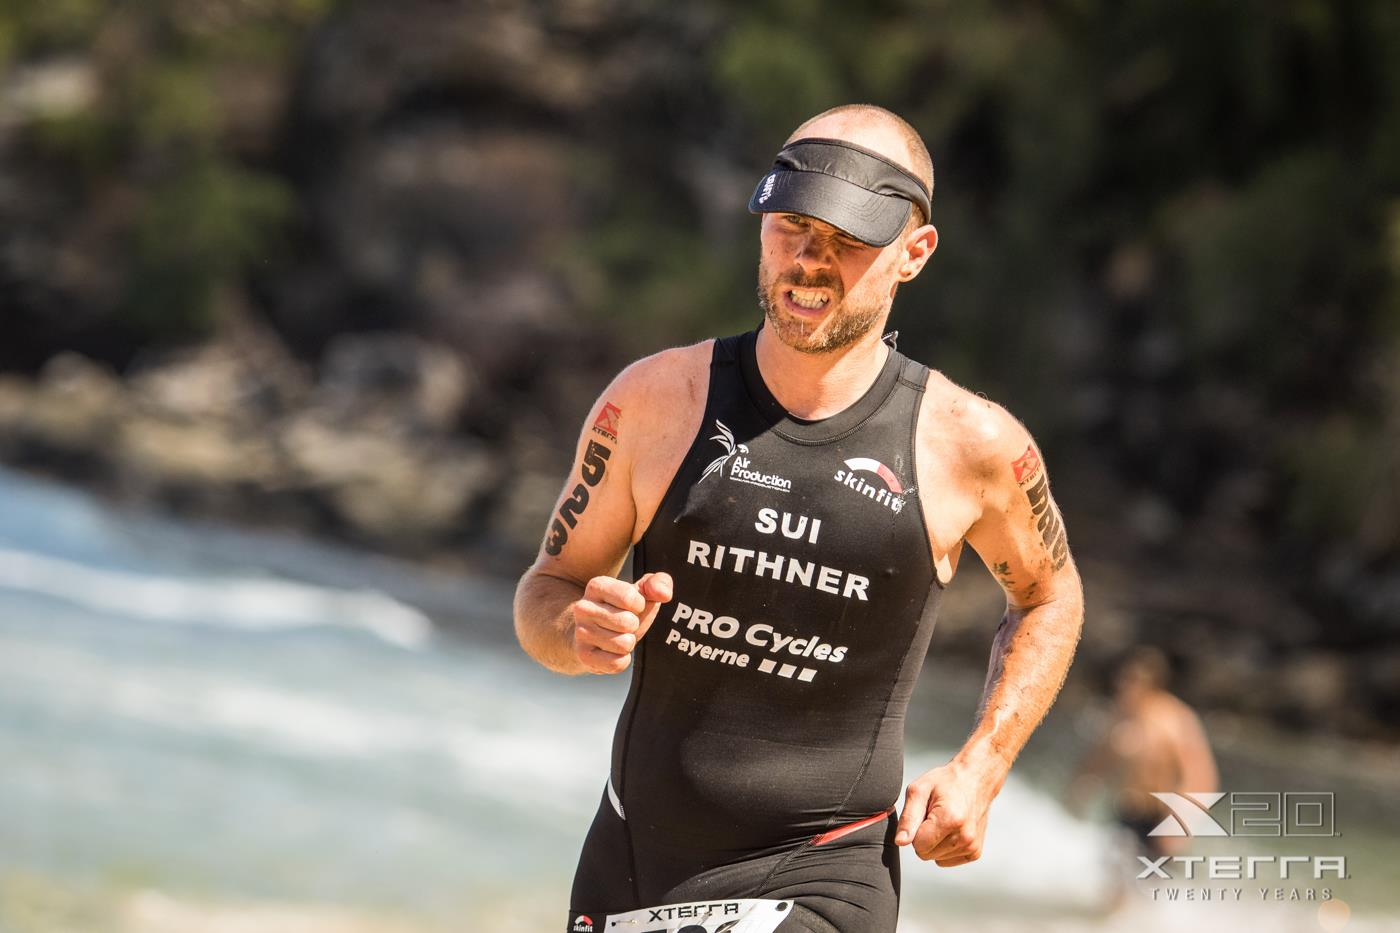 XTERRA_WORLD_CHAMPIONSHIP_2015_00067